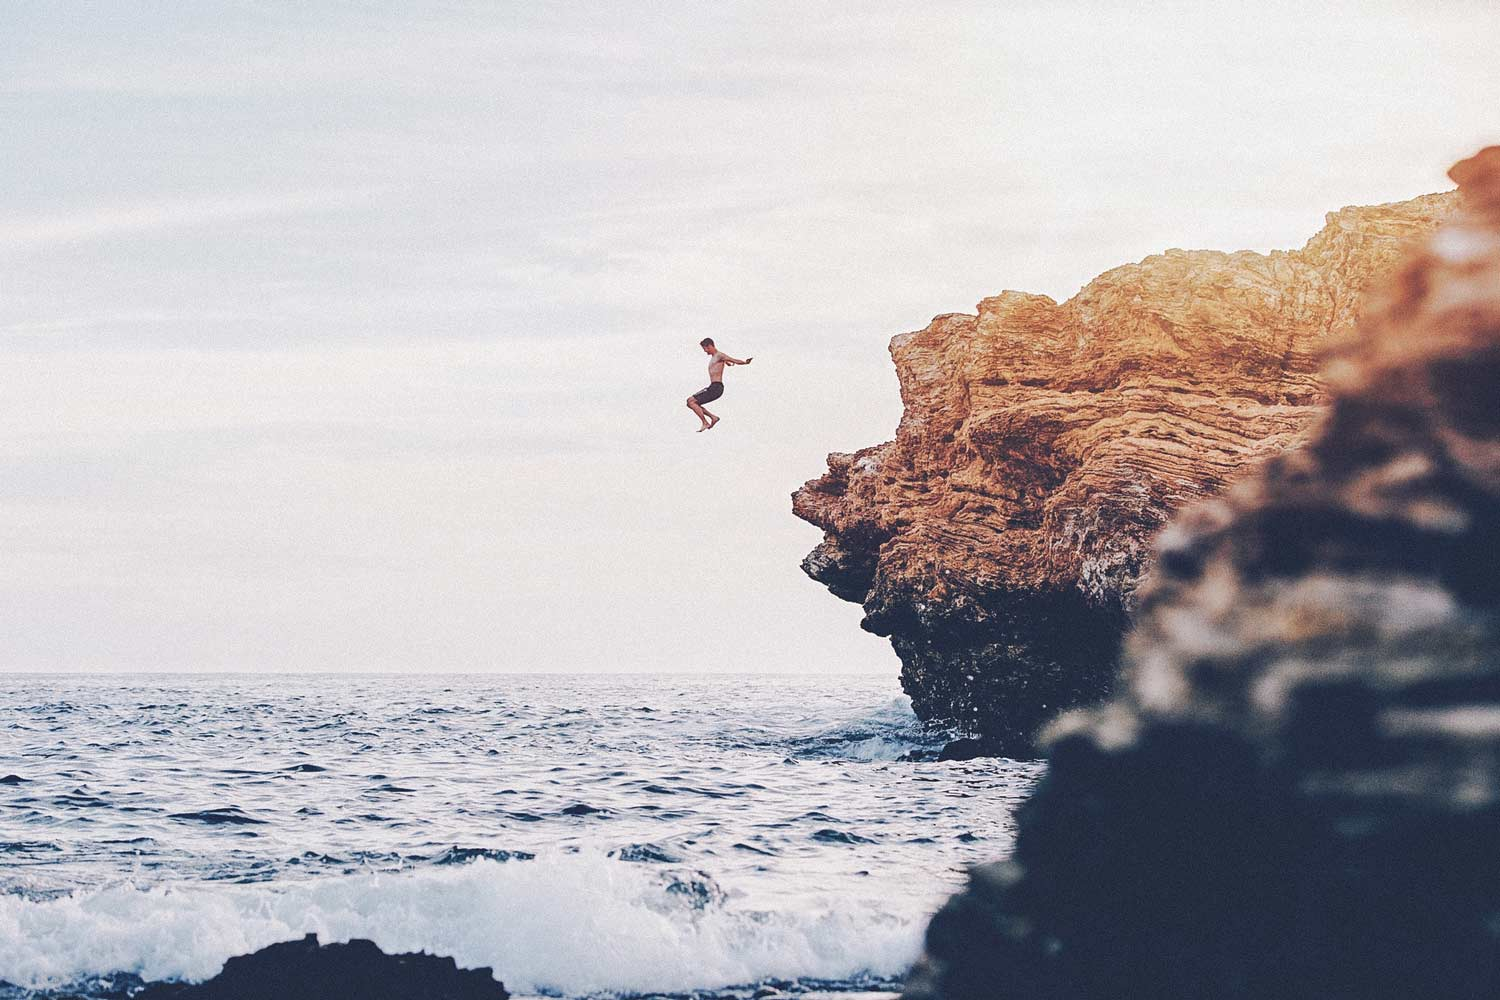 Rock climbing and cliff jumping in Ibiza